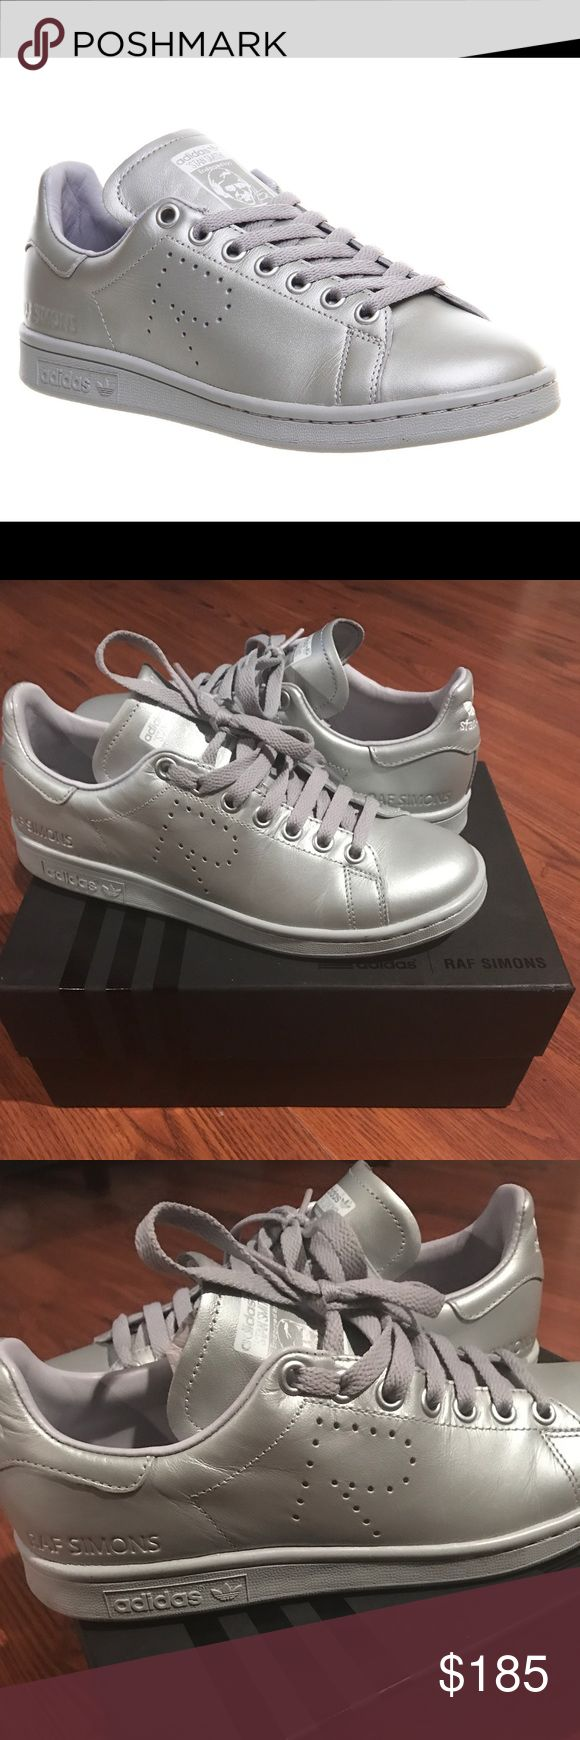 Raf Simons Adidas Stan Smith 100% authentic raf simons just in time for the summer. At more than half off you can't let this go. Pristine condition only worn twice. Send offers! Size 6 in men but will fit a size 8 women's Raf Simons Shoes Sneakers